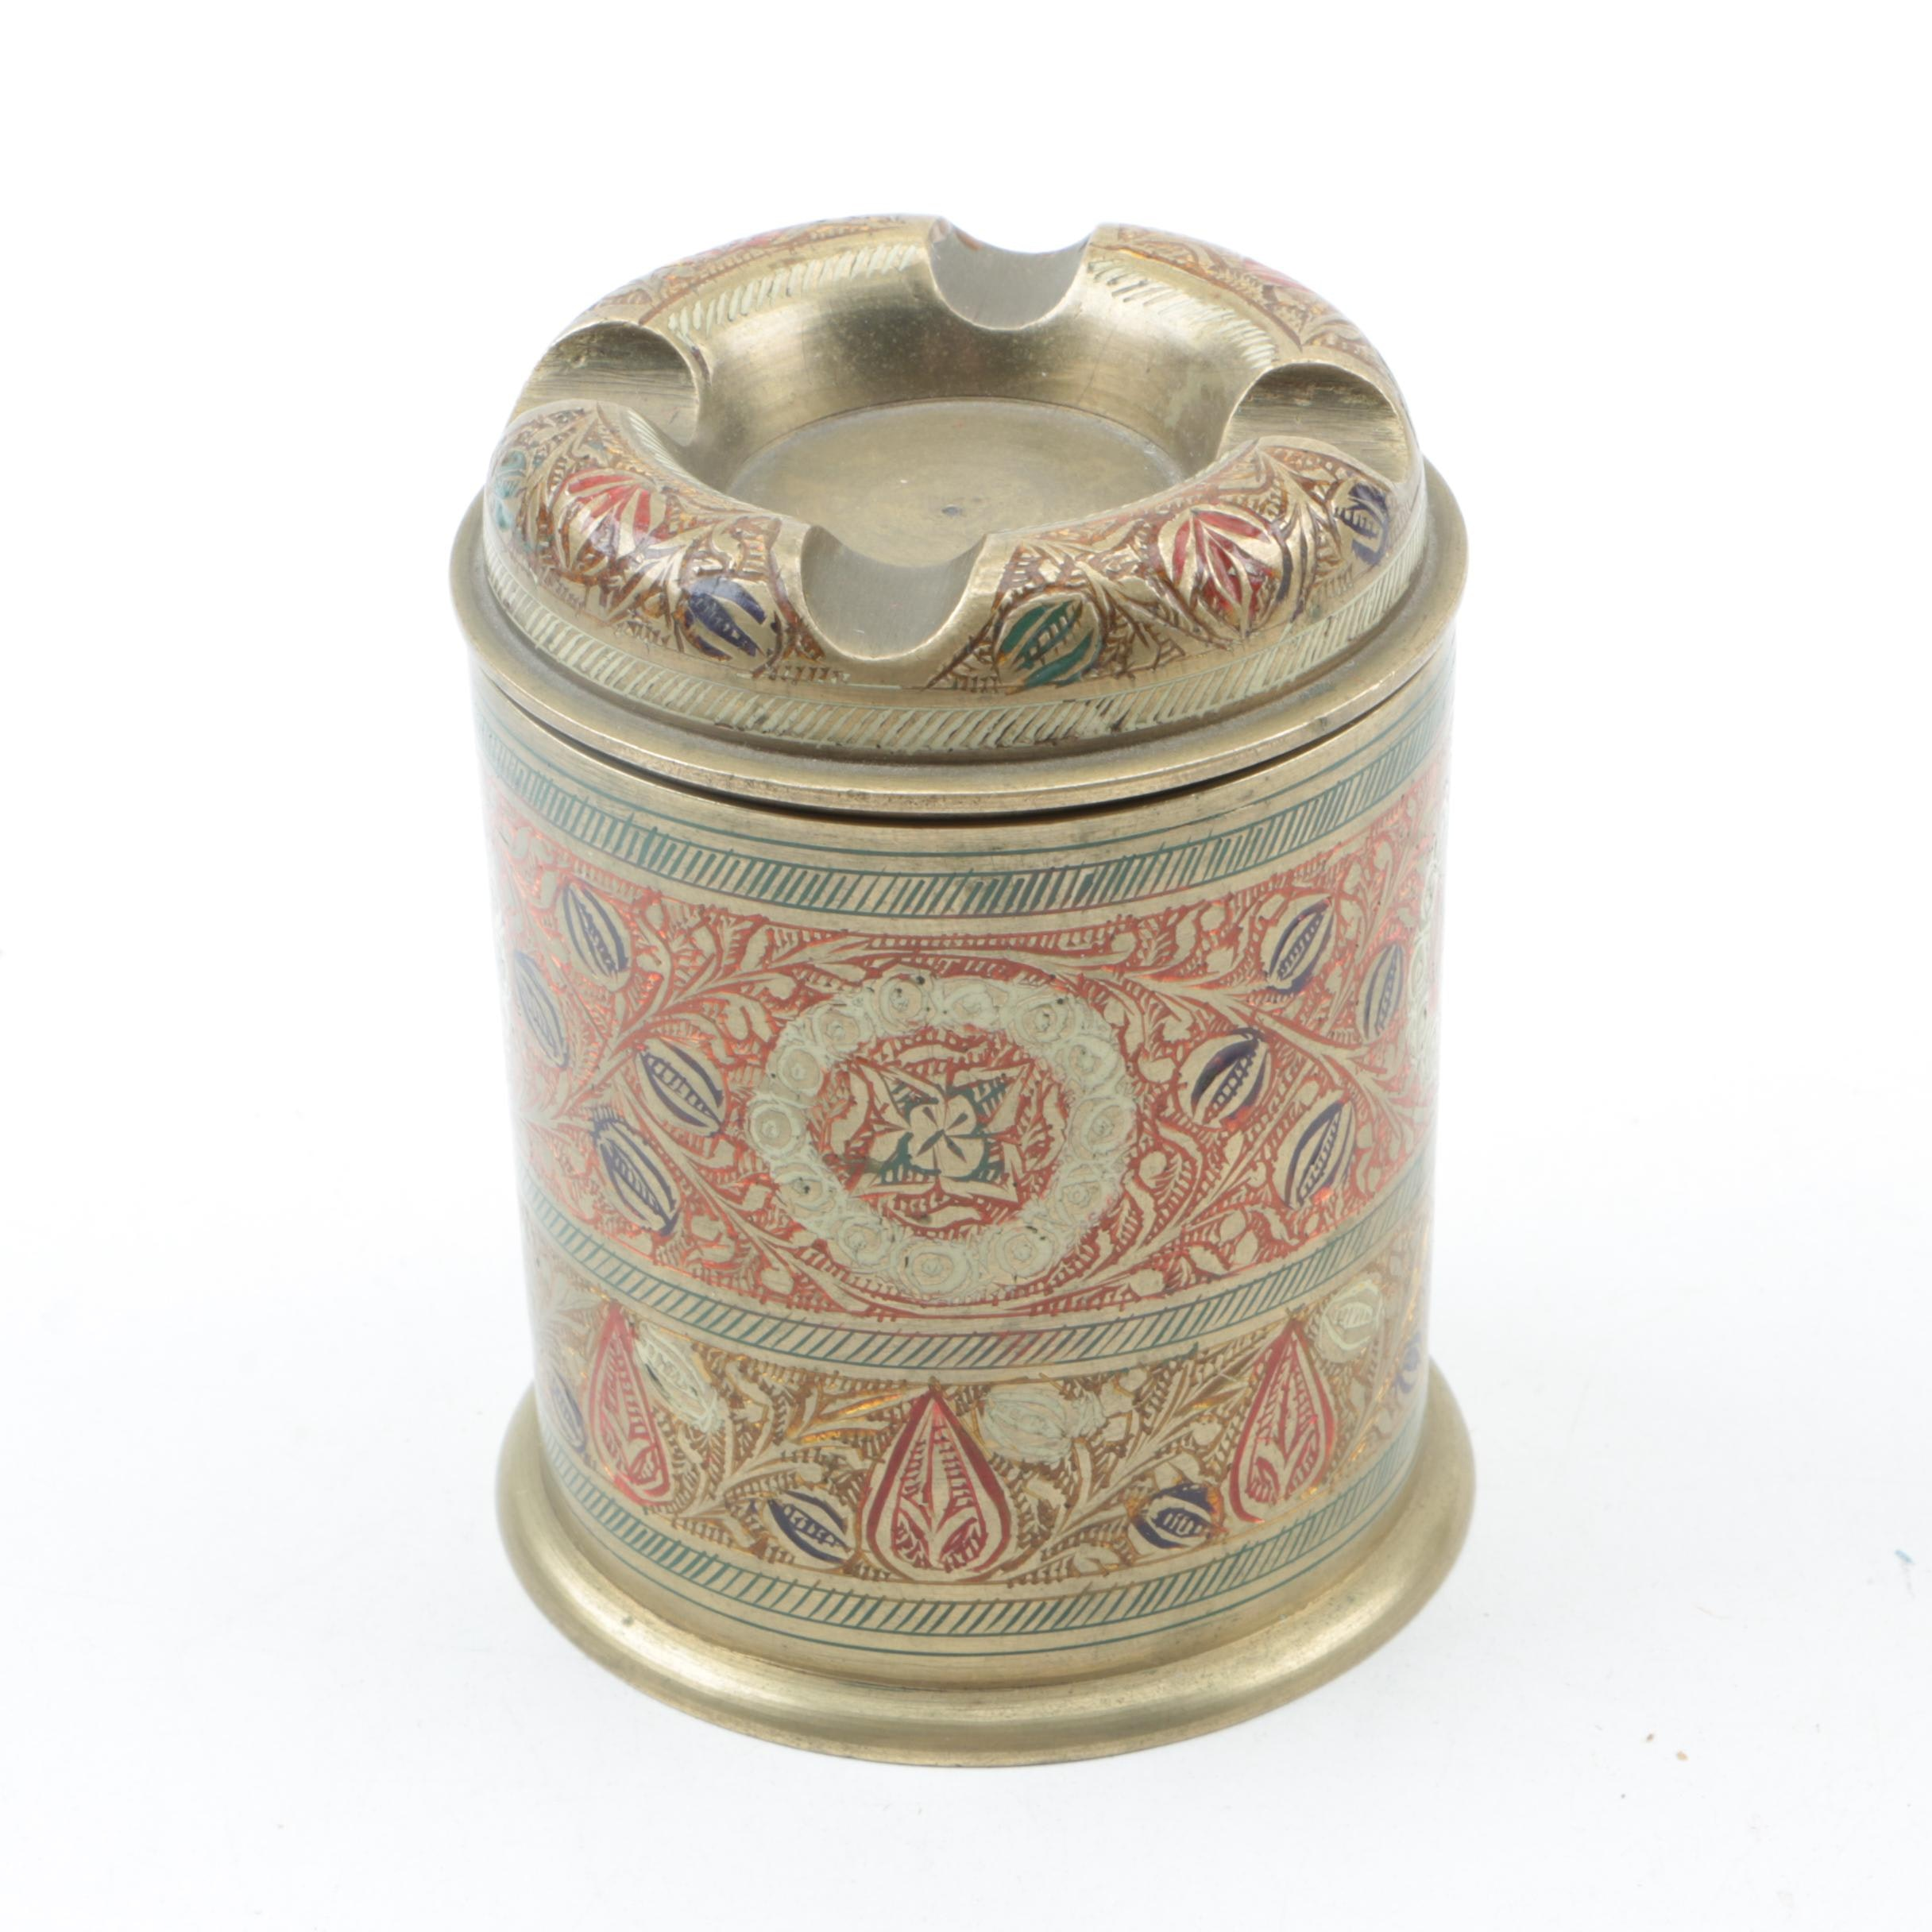 Metal Floral Motif Container with Ash Receiver Style Lid